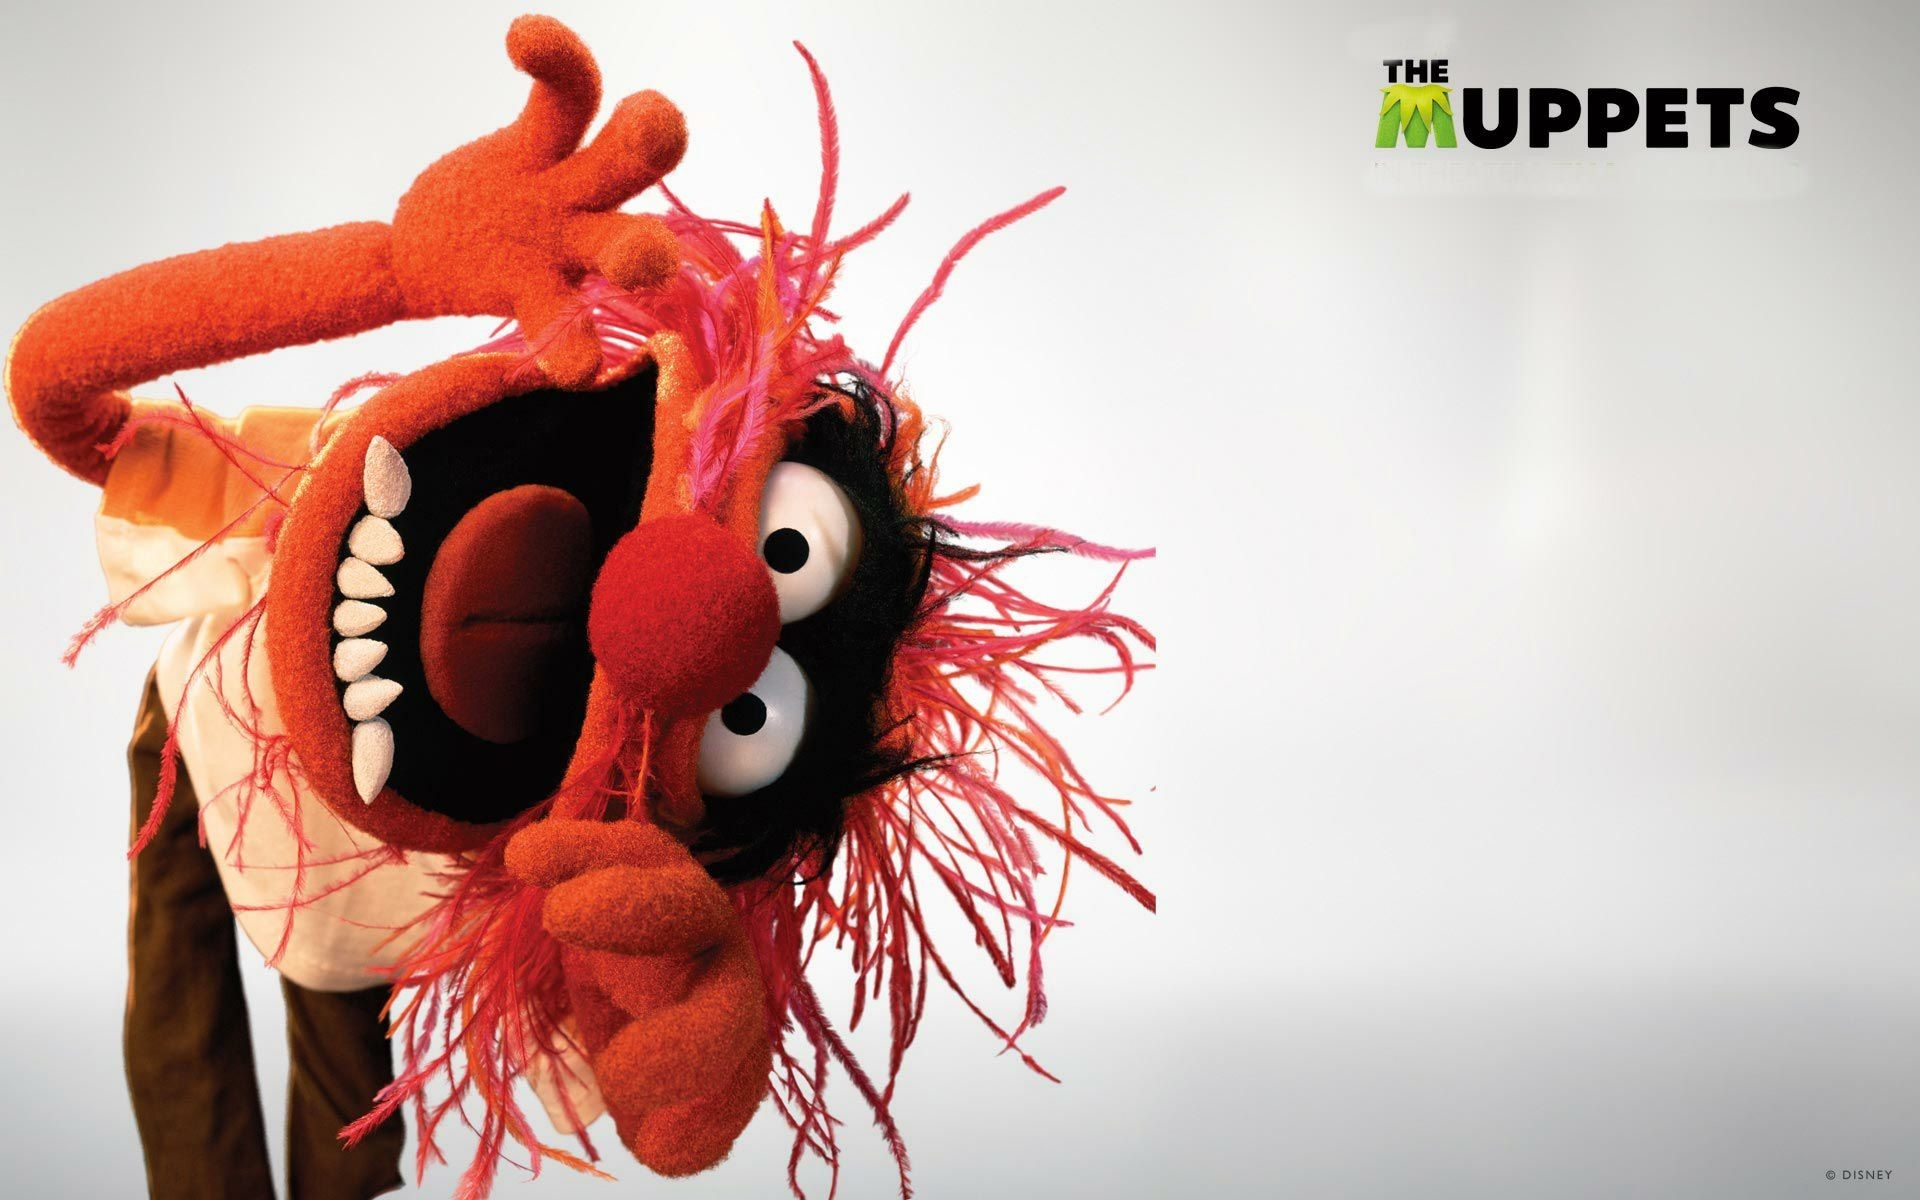 Res: 1920x1200, Explore The Muppets, Animal Wallpaper, and more!